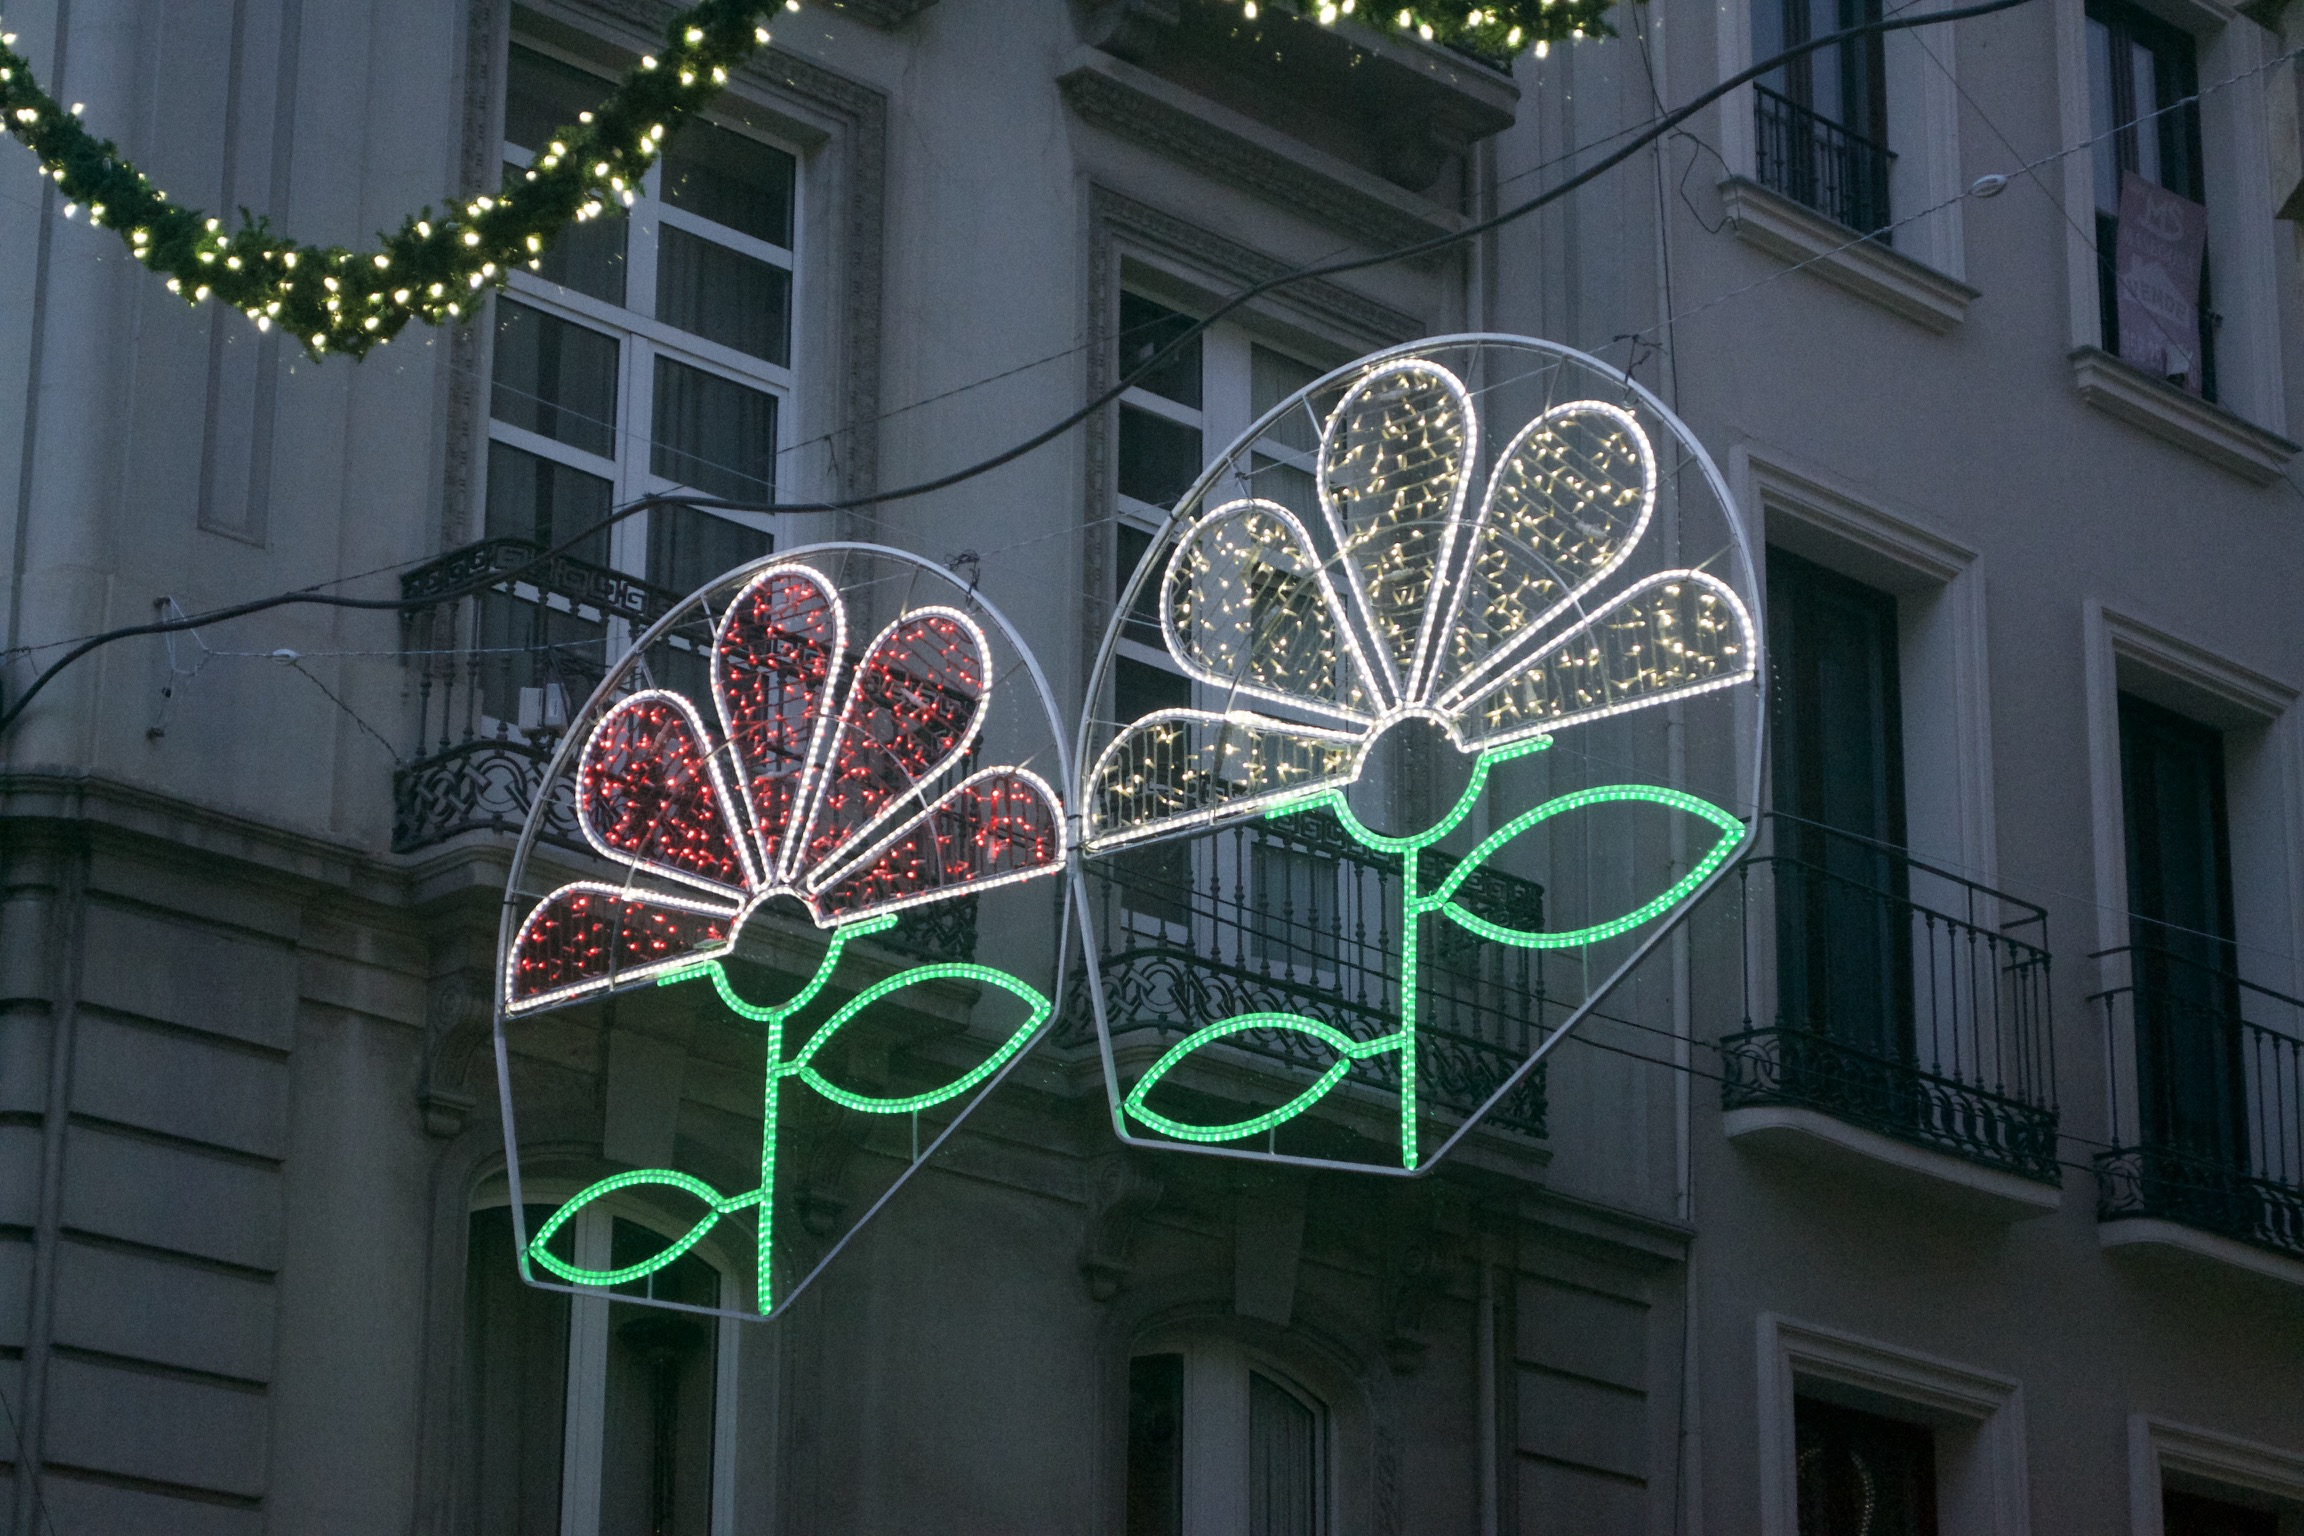 An illuminated wireframe image of two flowers hang in an alley.